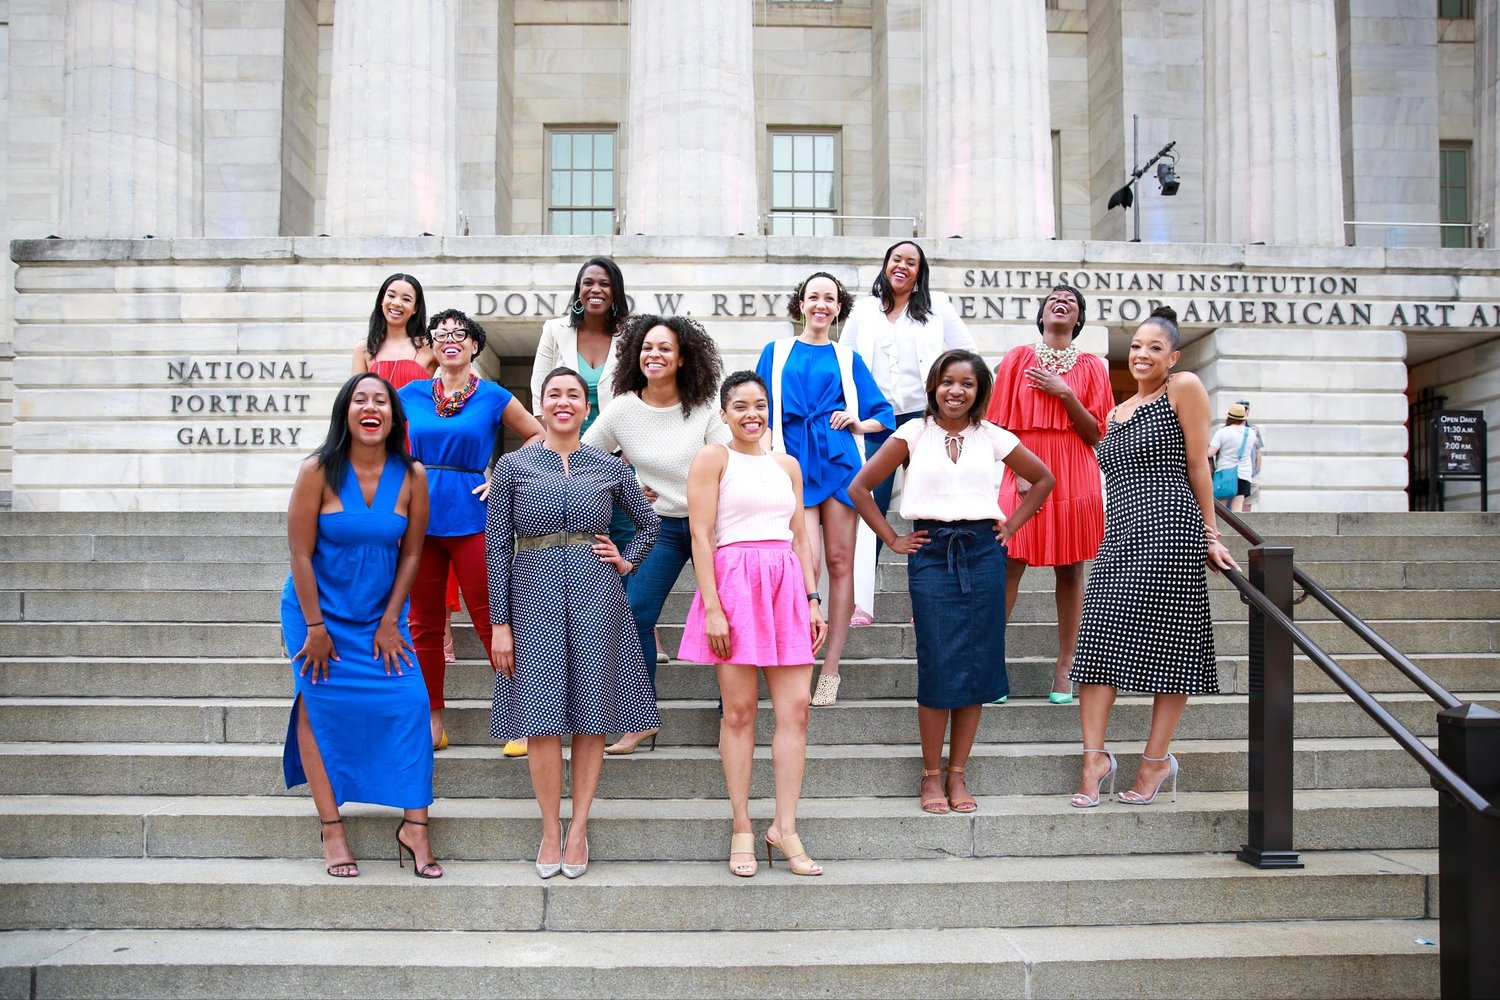 12 Black women standing up laughing on steps outside the National Portrait Gallery in Washington, D.C.  Photos:  Milli Mike / Millgrimage